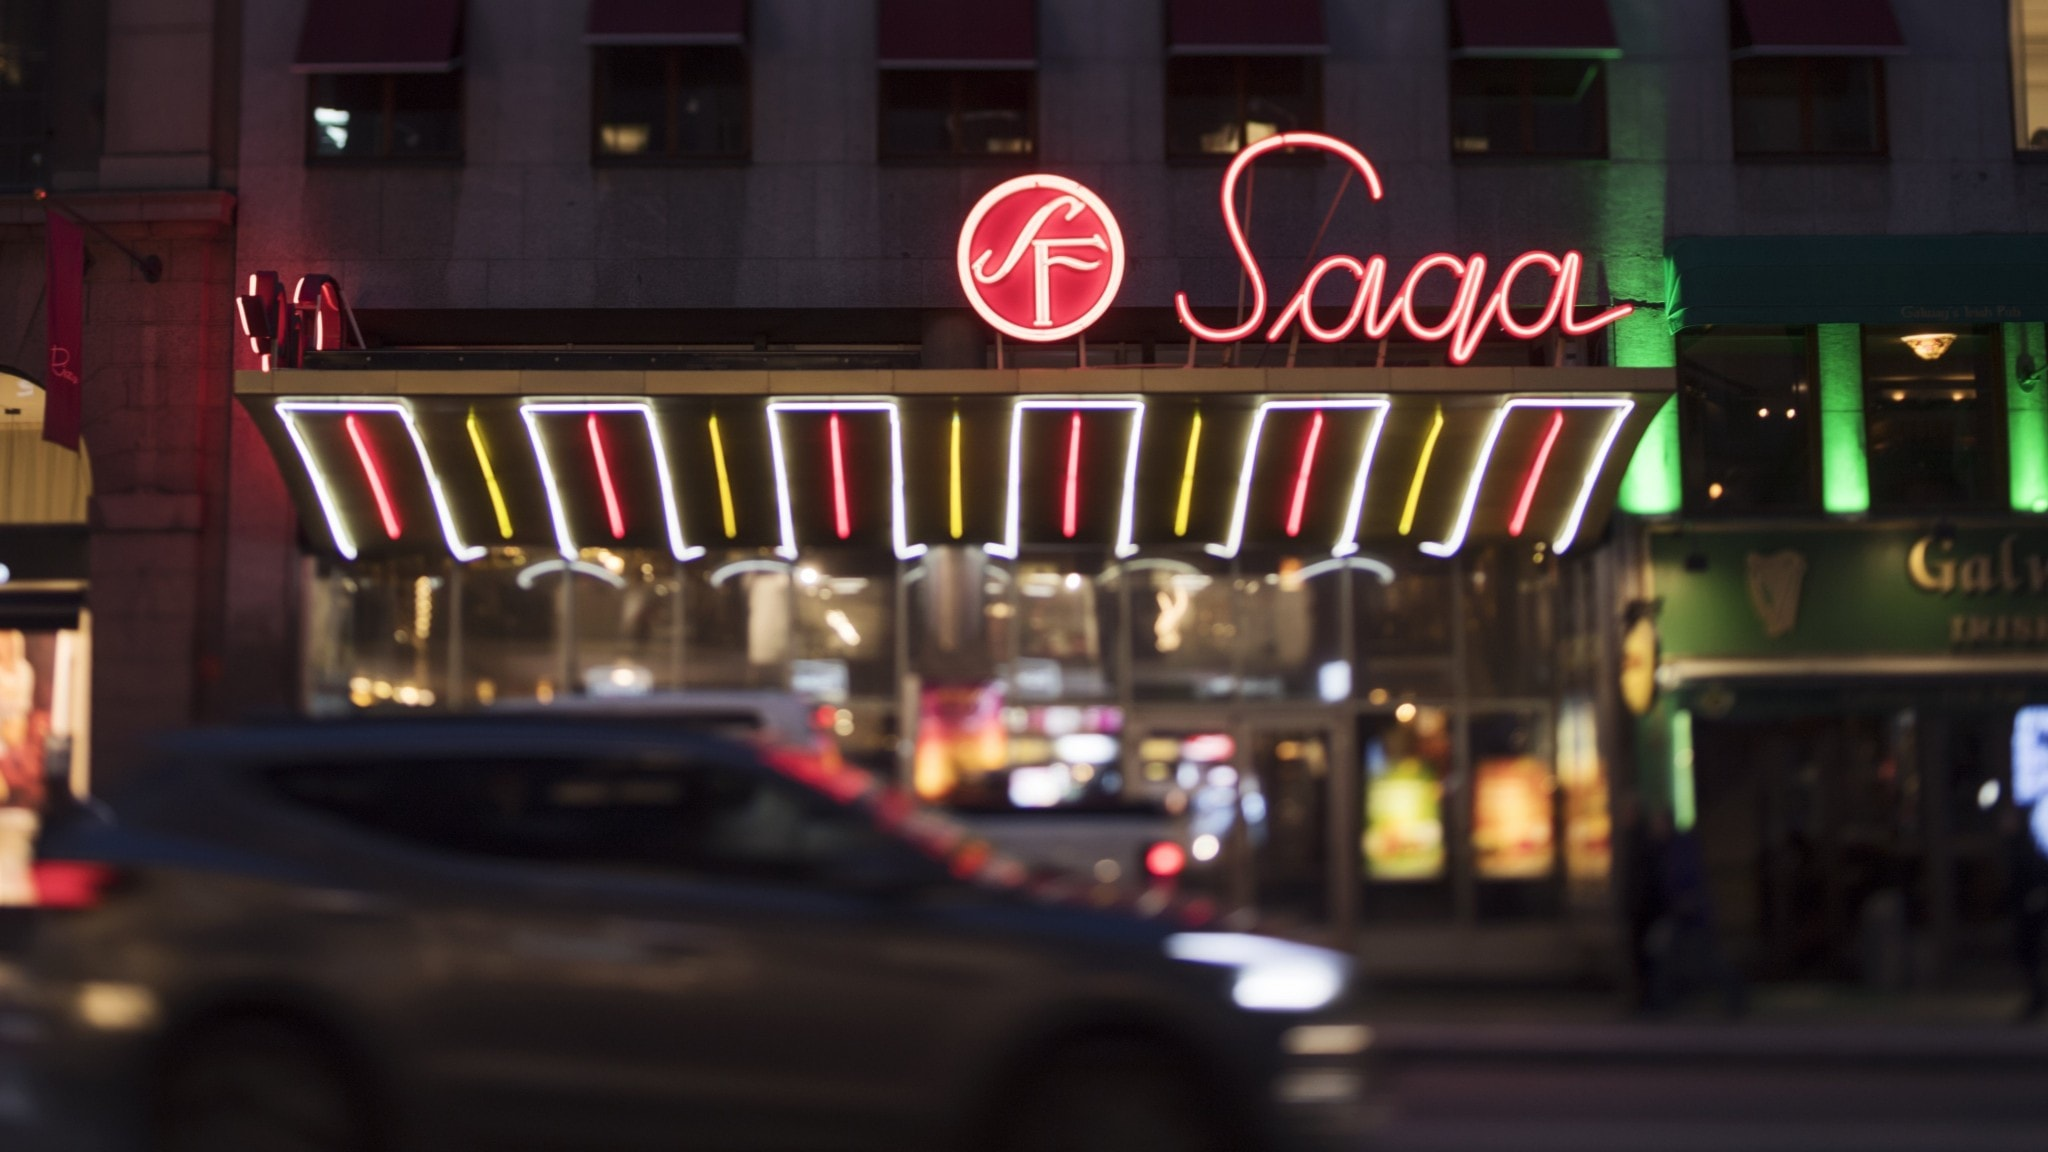 A lit neon sign on a building.